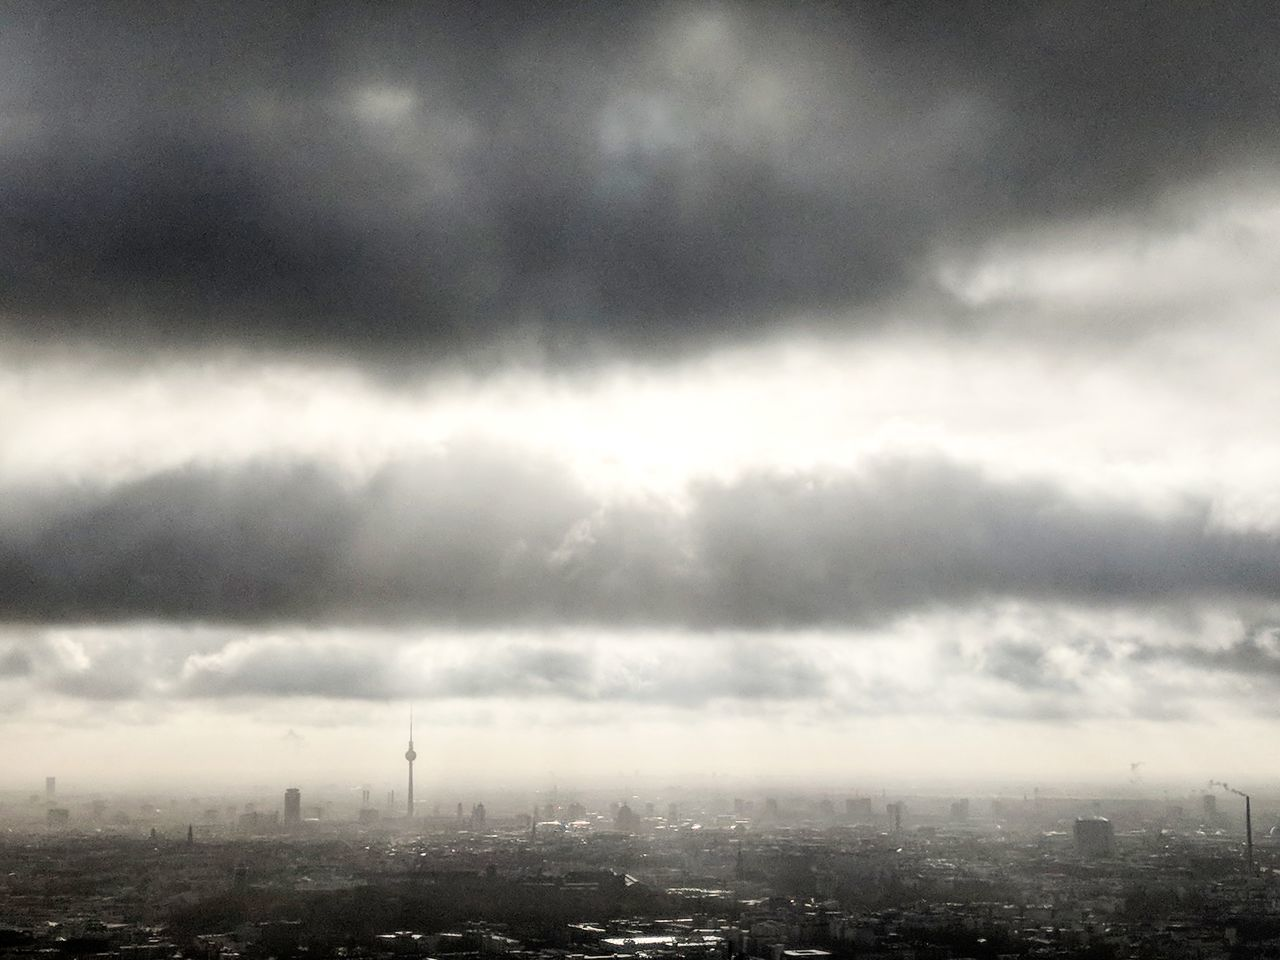 cityscape, city, architecture, sky, building exterior, cloud - sky, built structure, weather, no people, outdoors, storm cloud, day, nature, modern, skyscraper, beauty in nature